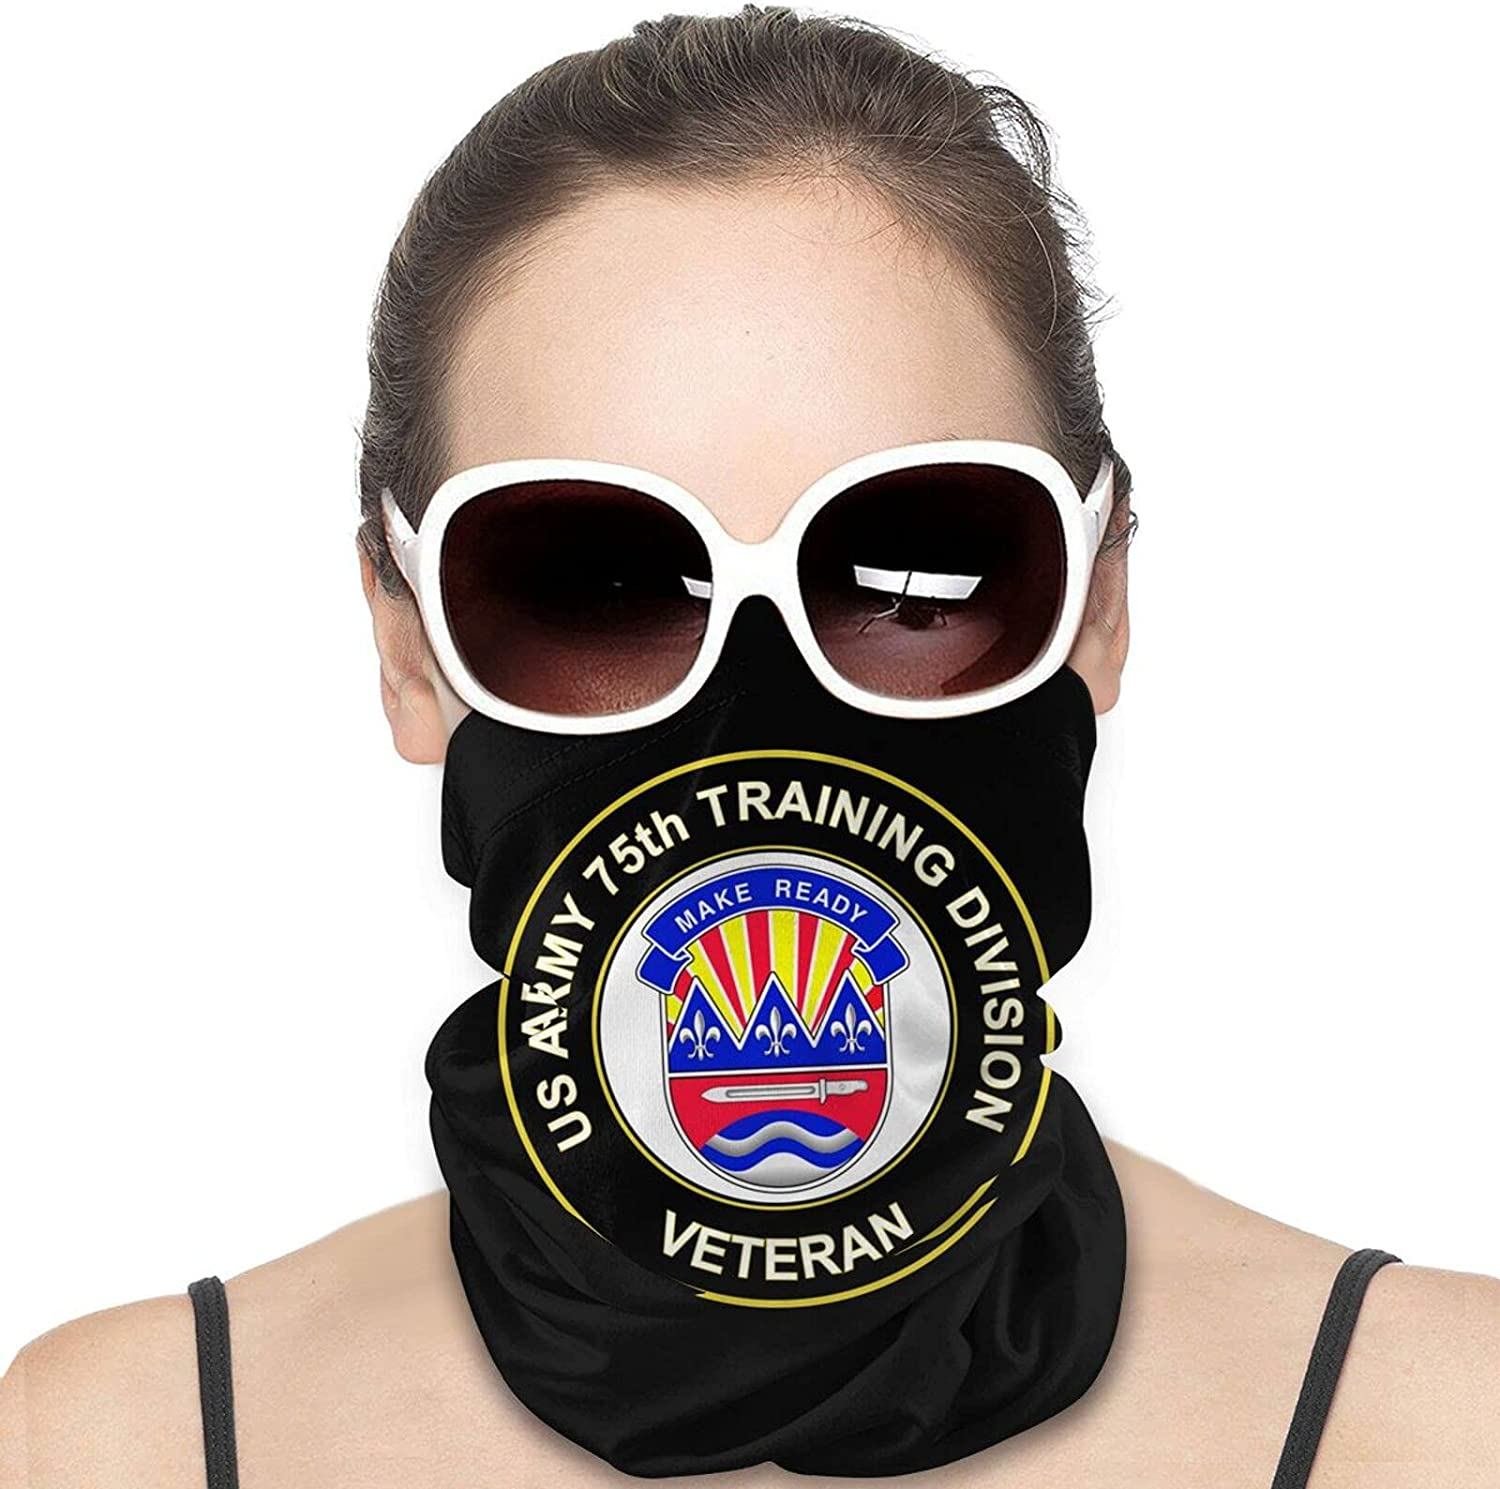 U.S. Army 75th Training Division Veteran Round Neck Gaiter Bandnas Face Cover Uv Protection Prevent bask in Ice Scarf Headbands Perfect for Motorcycle Cycling Running Festival Raves Outdoors